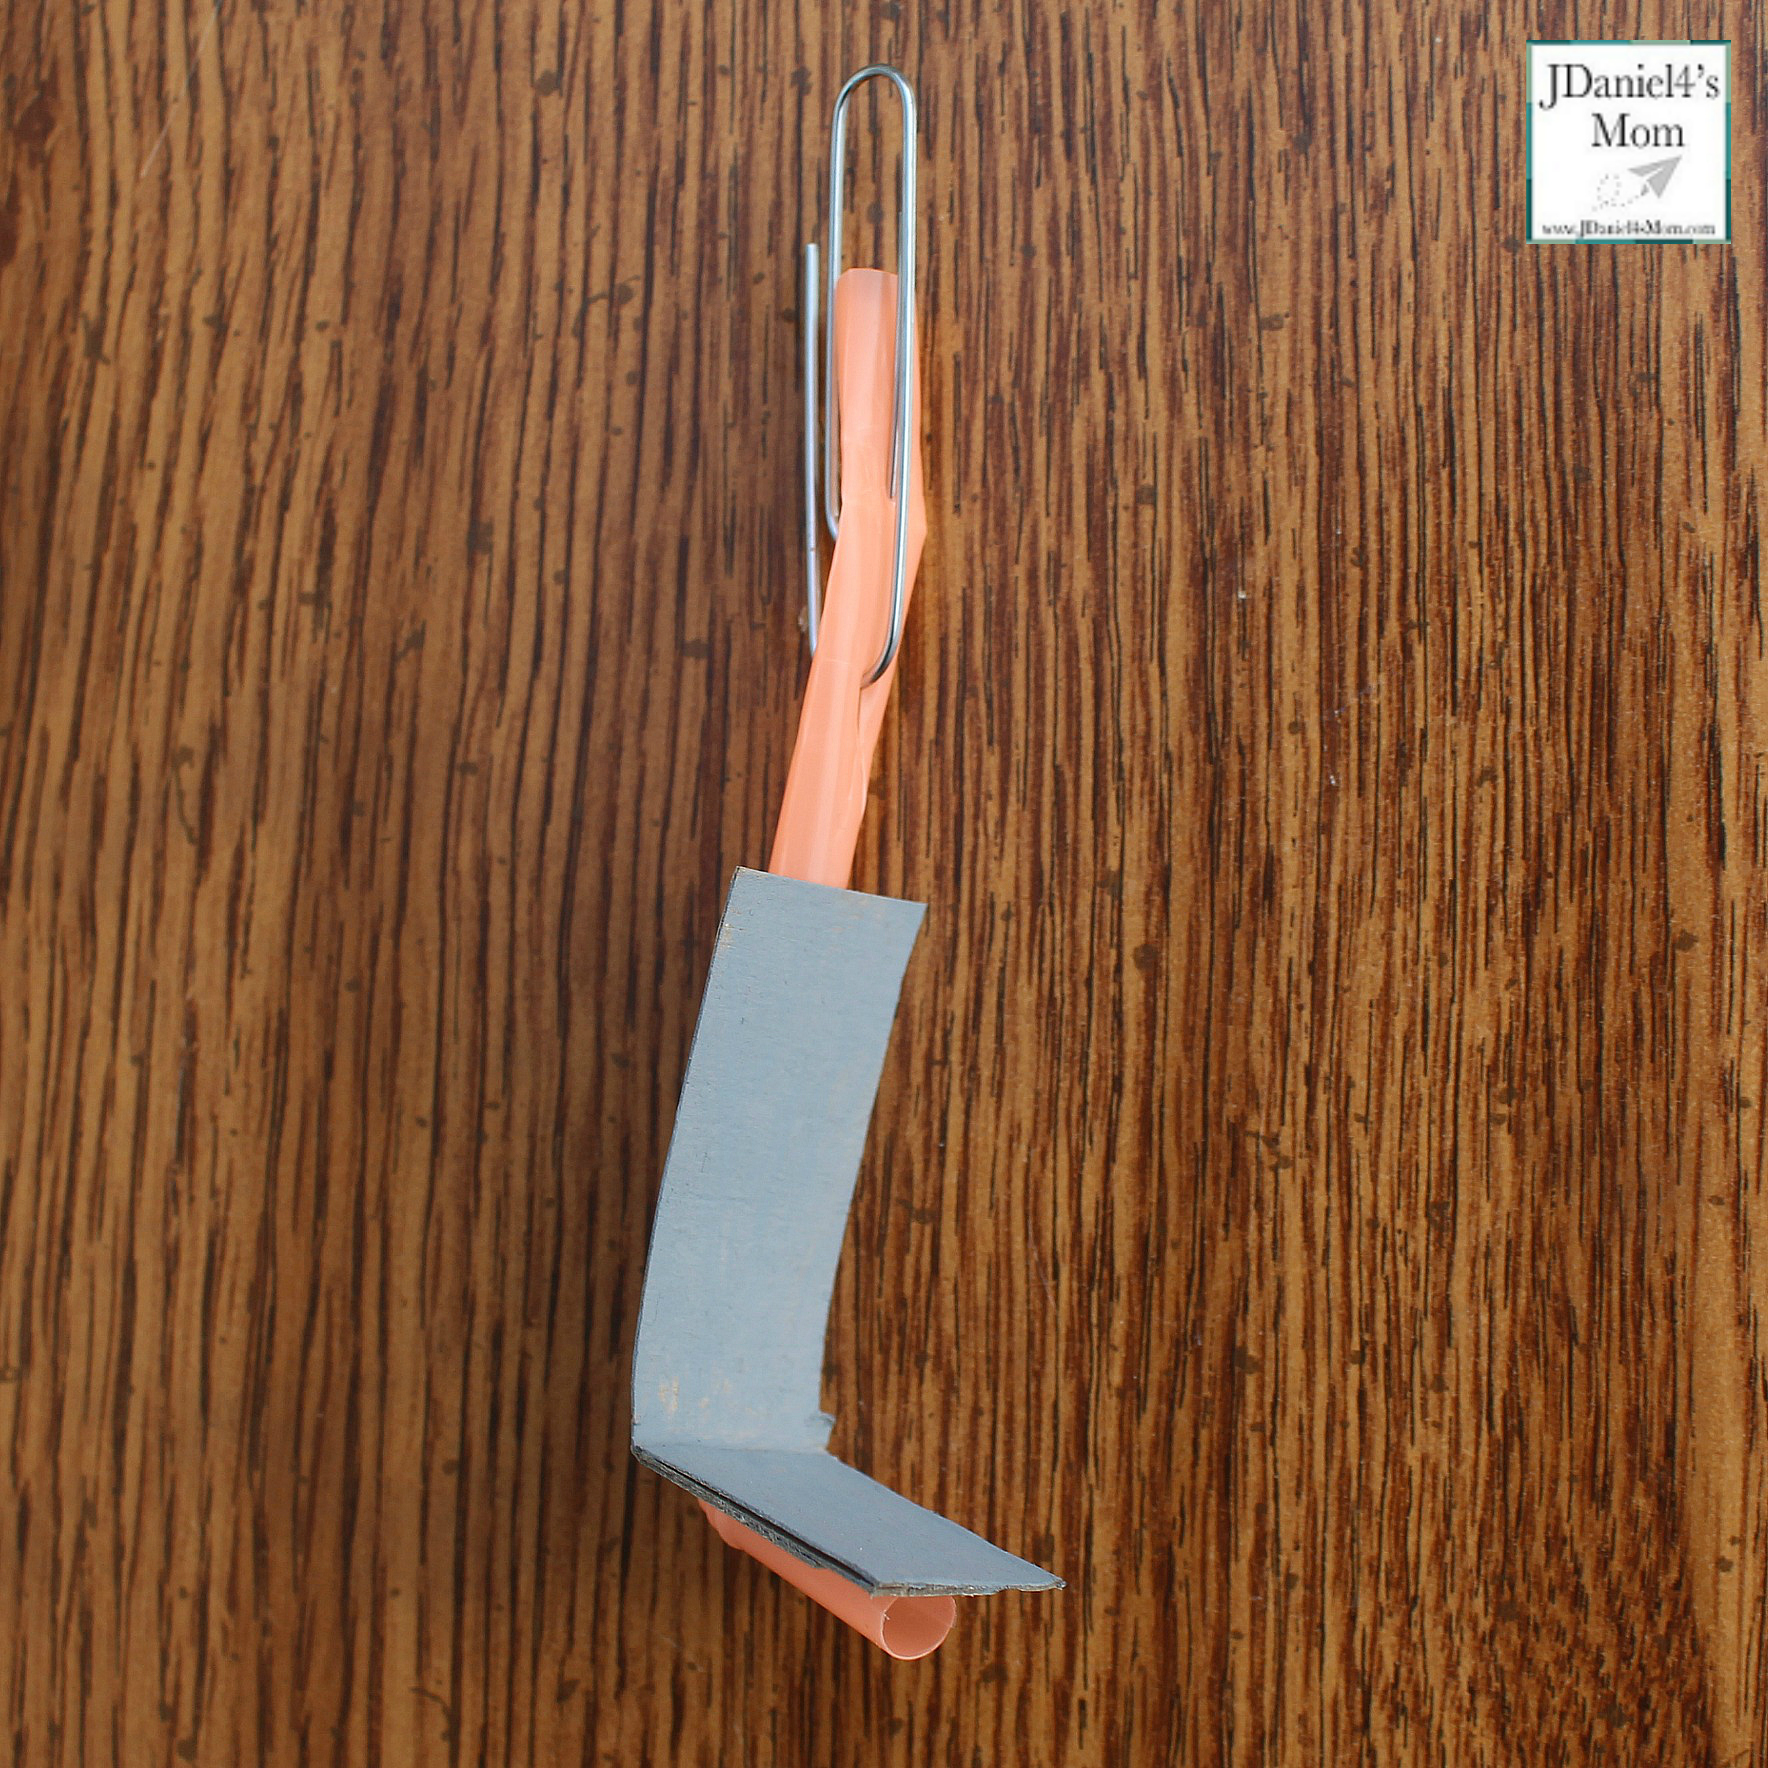 Olympic Activities for Kids: Ski Lift Paper Plate Craft- This is the third in a series for five Olympic themed science and craft activities. This project explores using a pulley and creating a ski lift. This would be fun to do during the Winter Olympics. Students at school or children at home with have fun creating this interactive craft. Making the lift chair move it fun too.